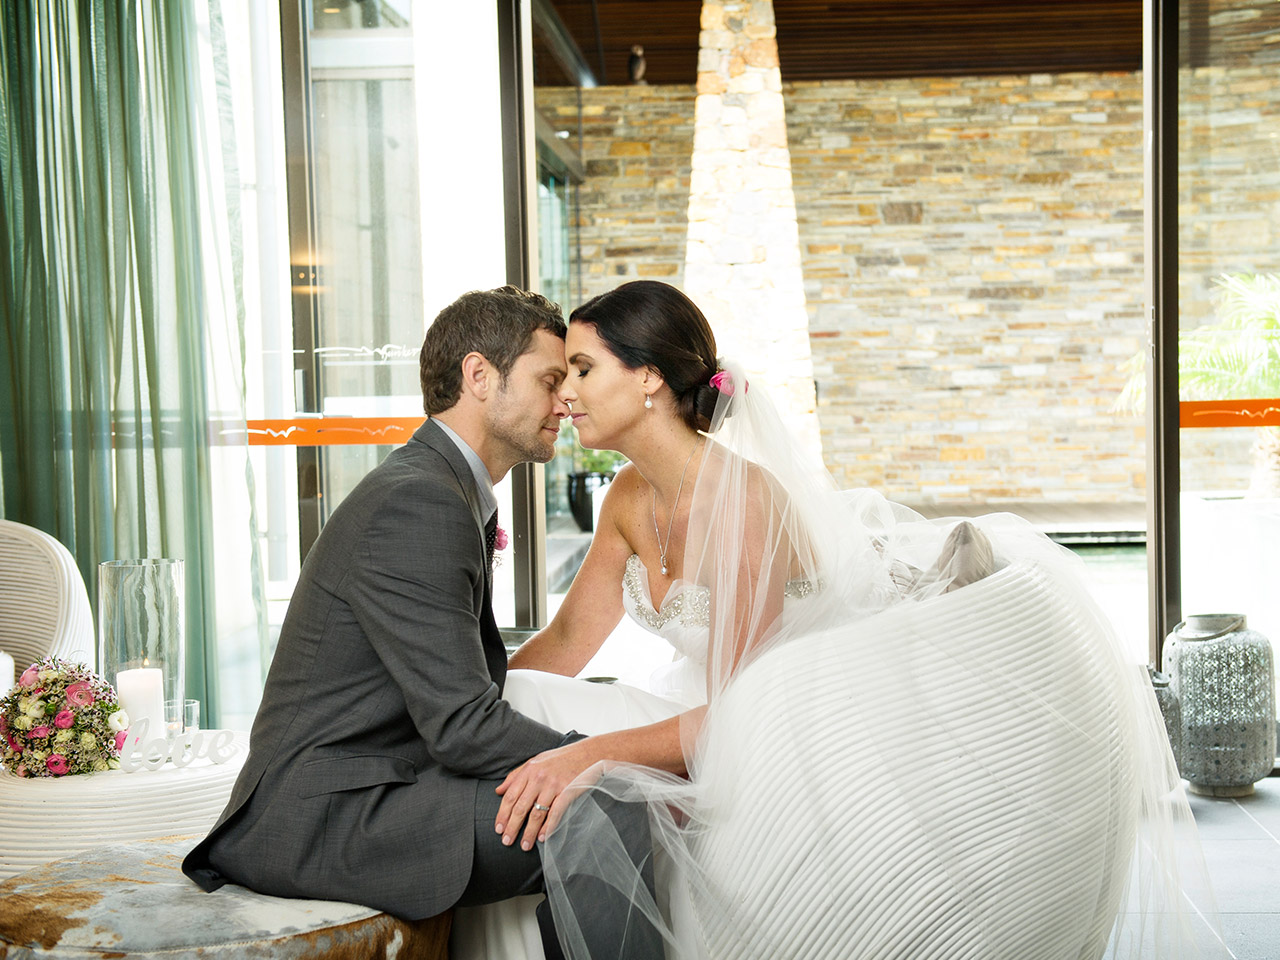 Groom And Bride Pictorial Almost Kissing.